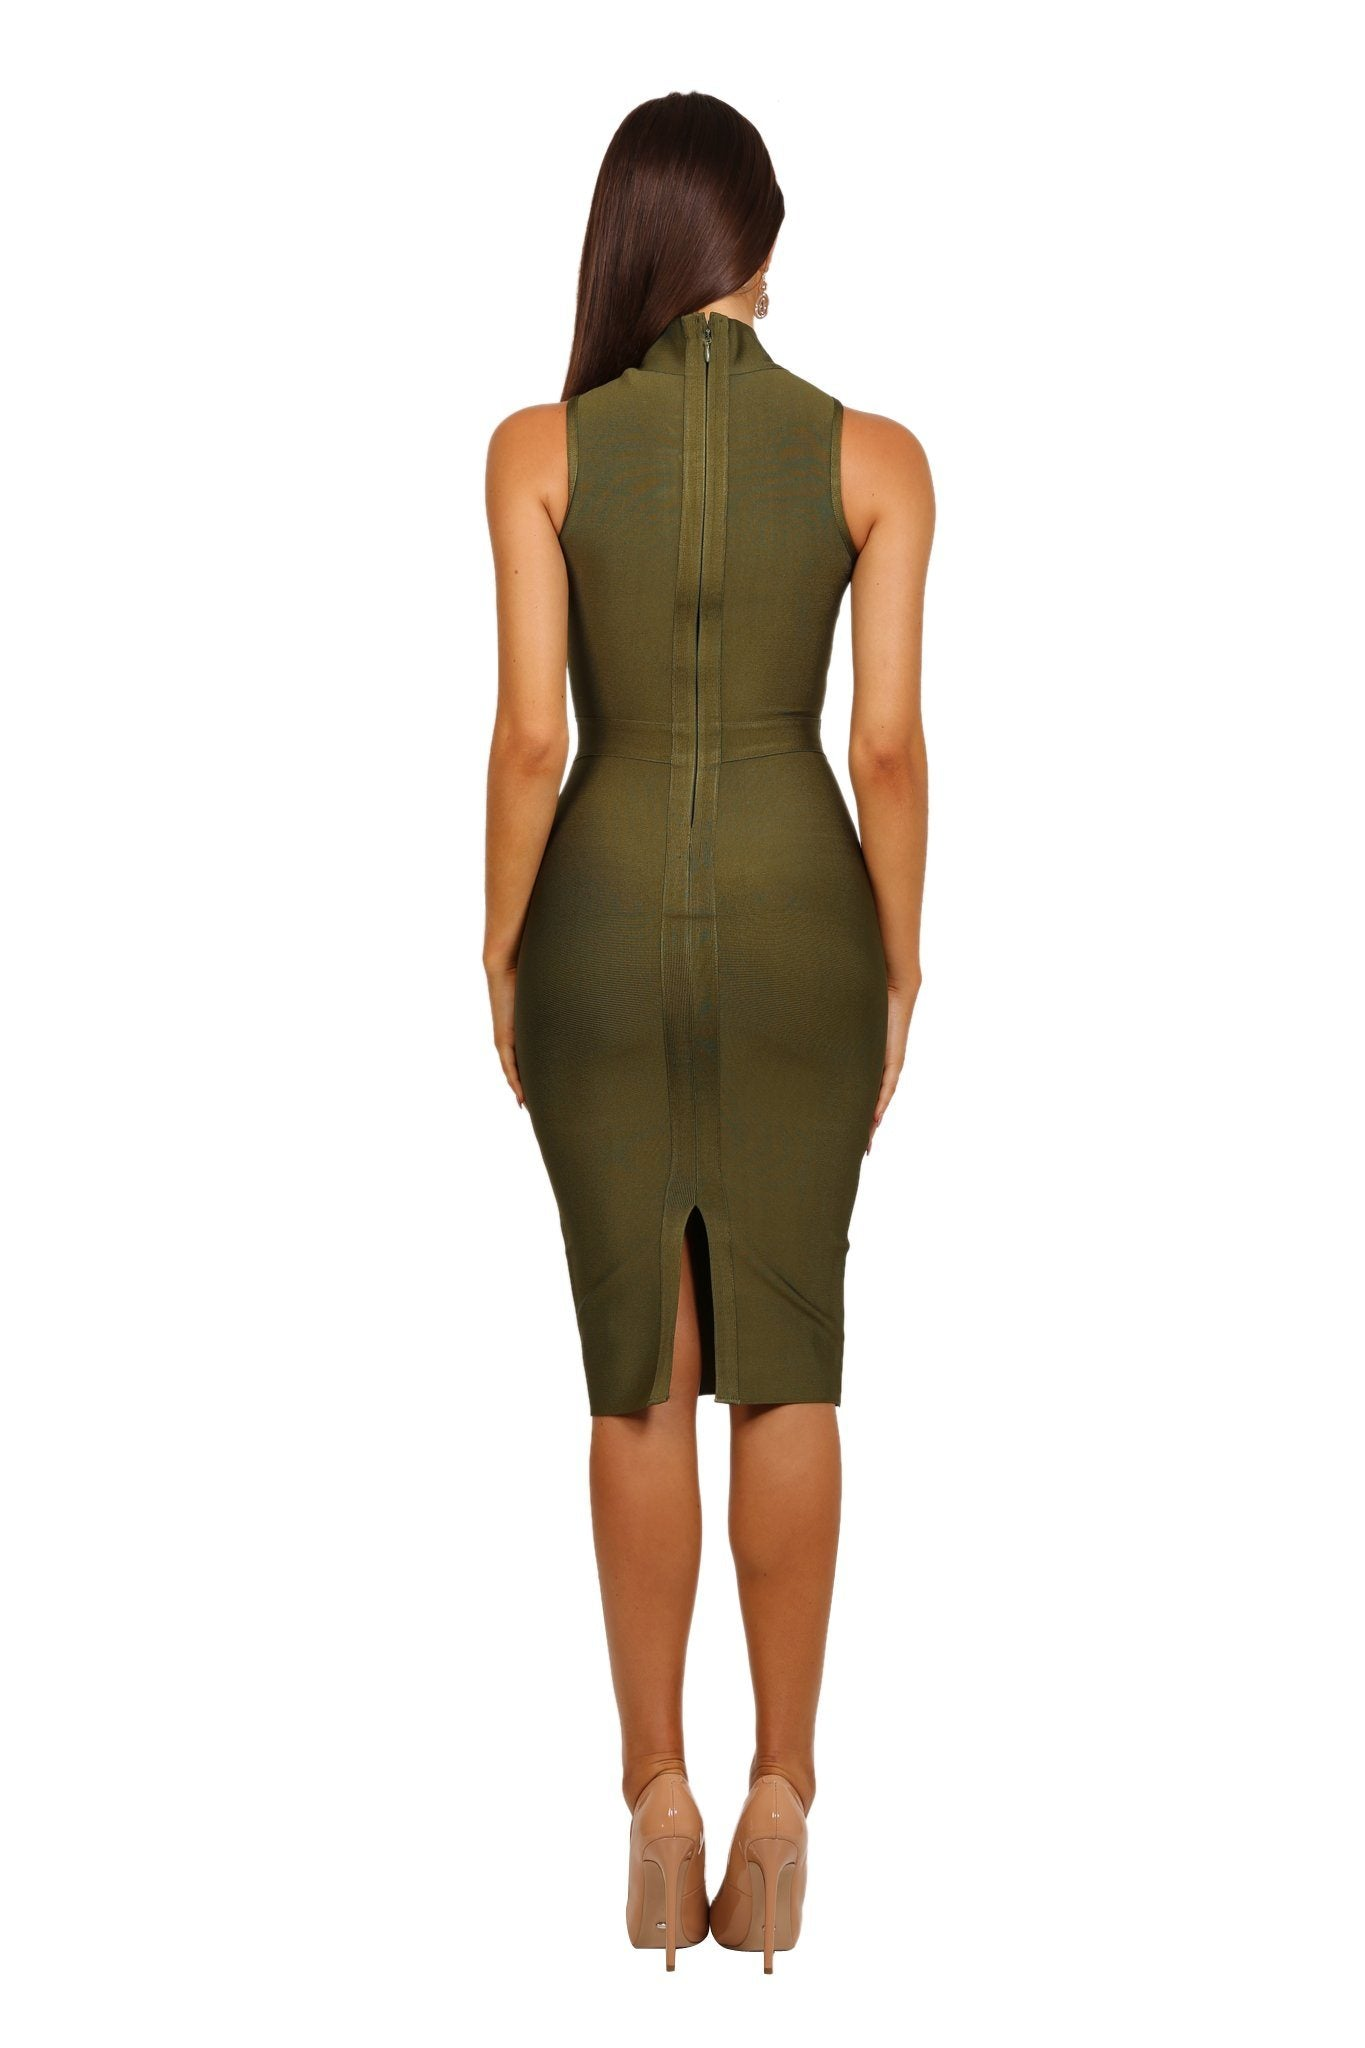 890ea737bc0b20 ... Back shot of Olive green colored high neck sleeveless tight fitted knee  length bandage dress ...